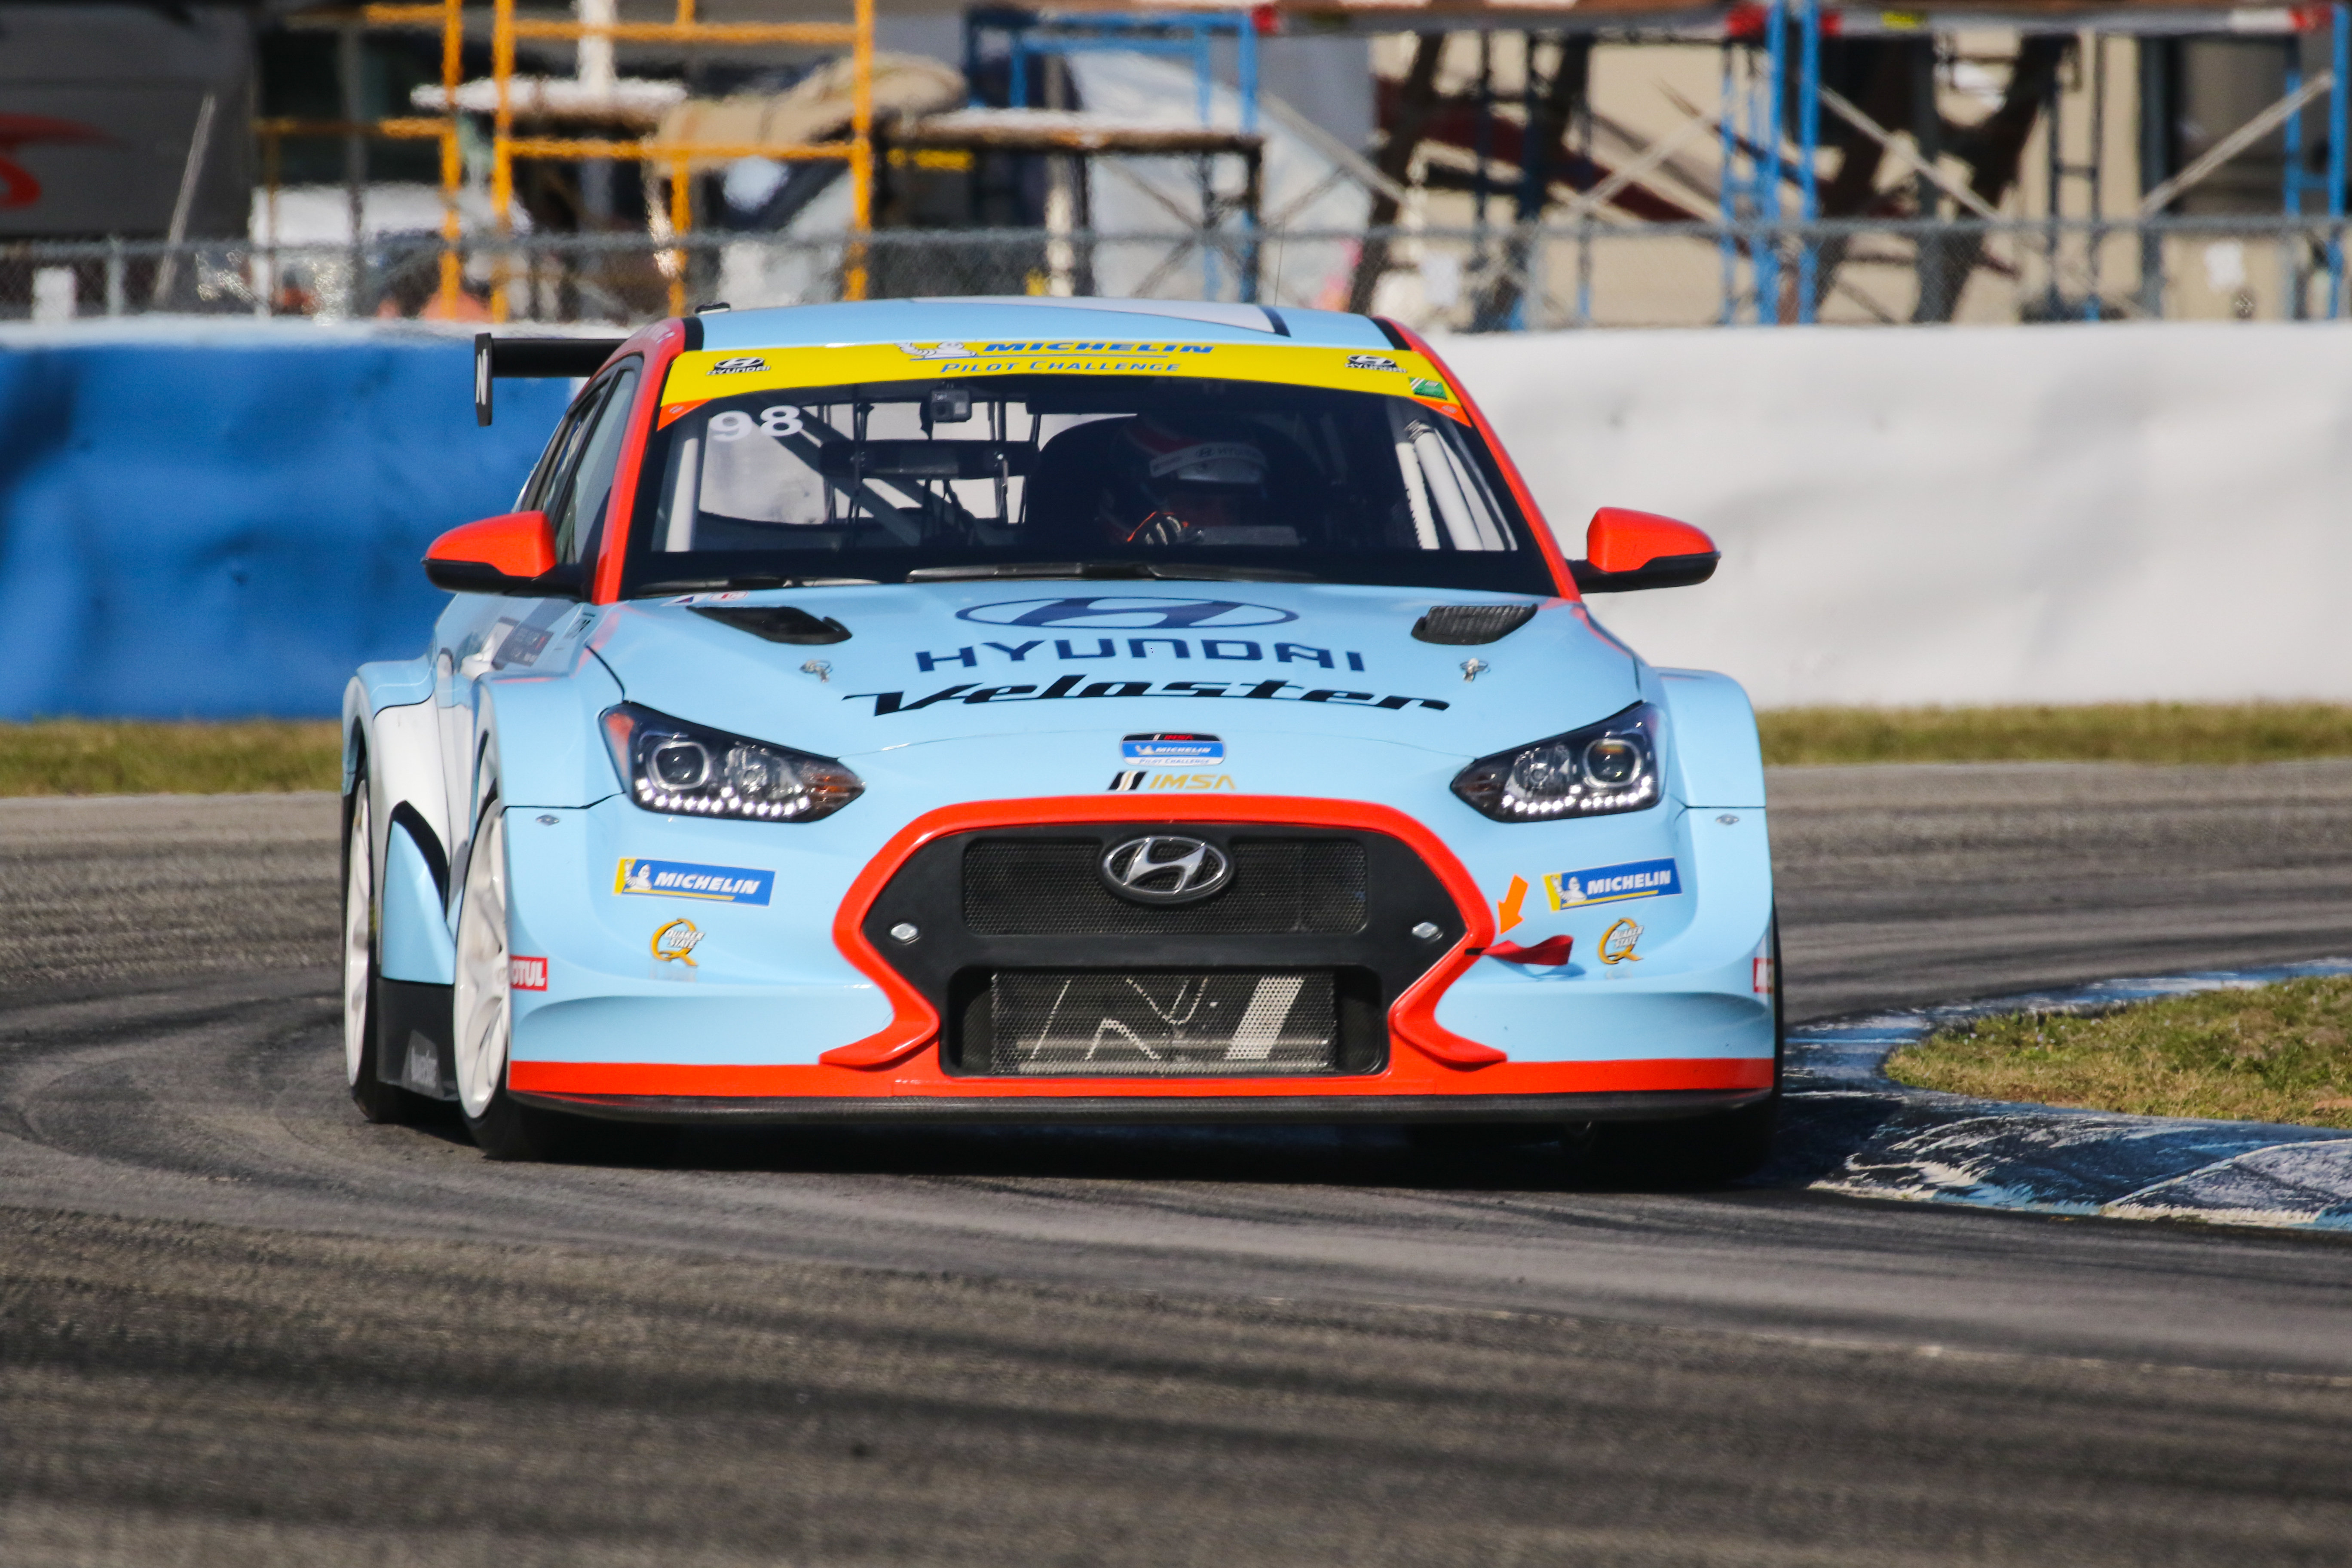 Mark Wilkins/Michael Lewis - Veloster N TCR - Sebring International Raceway